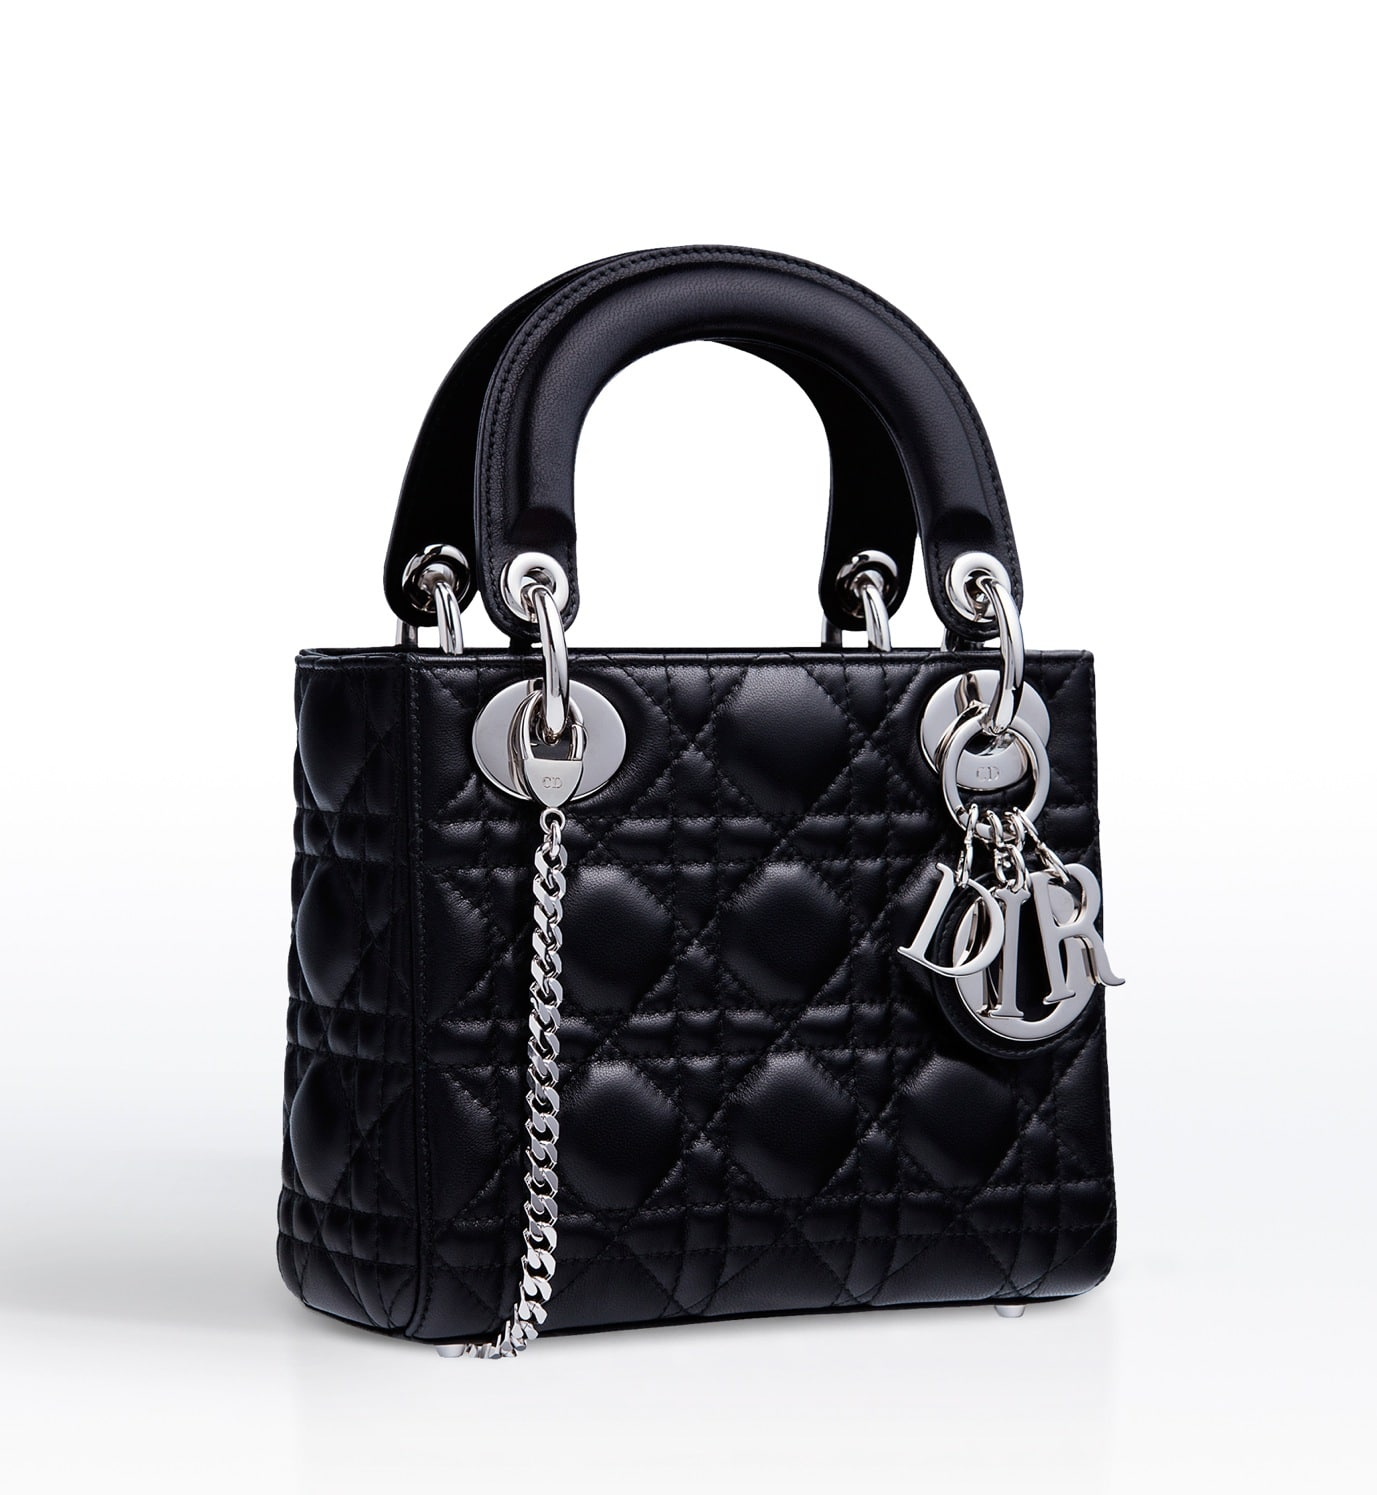 a3a5265f37aa Dior Cruise 2015 Bag Collection featuring Graffiti Lady Dior Bags ...